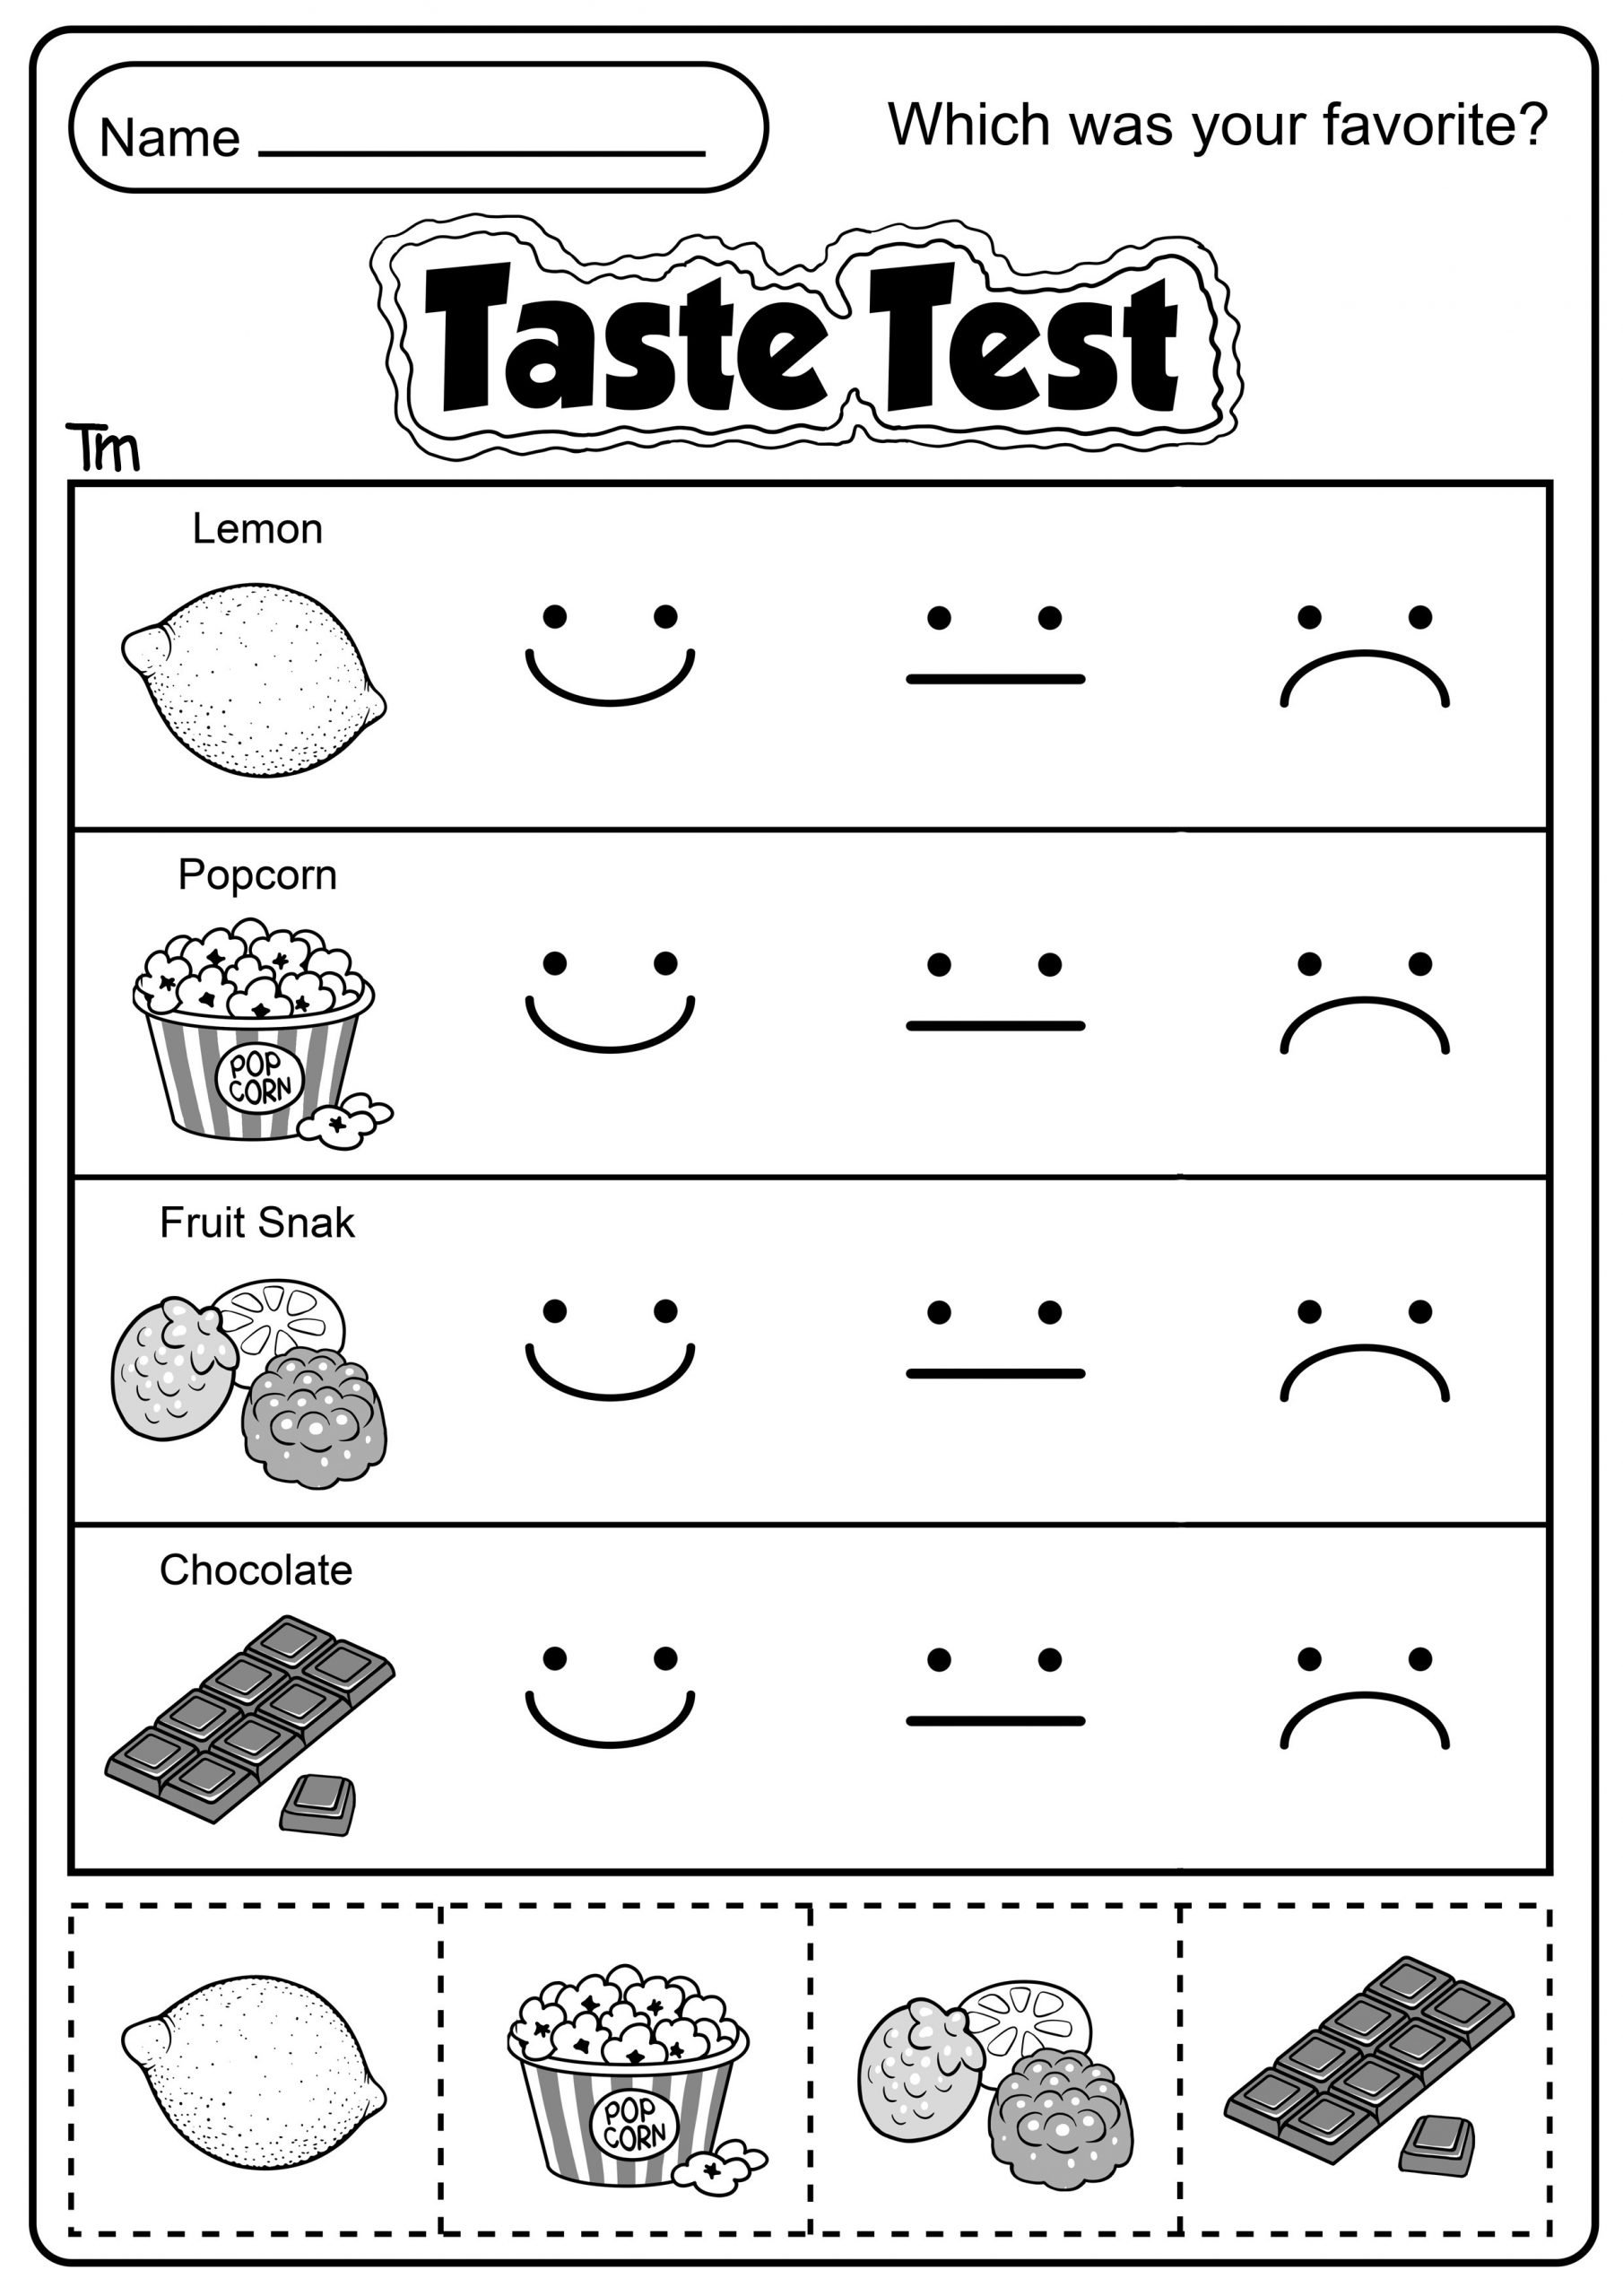 Five Senses Kindergarten Worksheet the Five Senses Taste Test Teachersmag